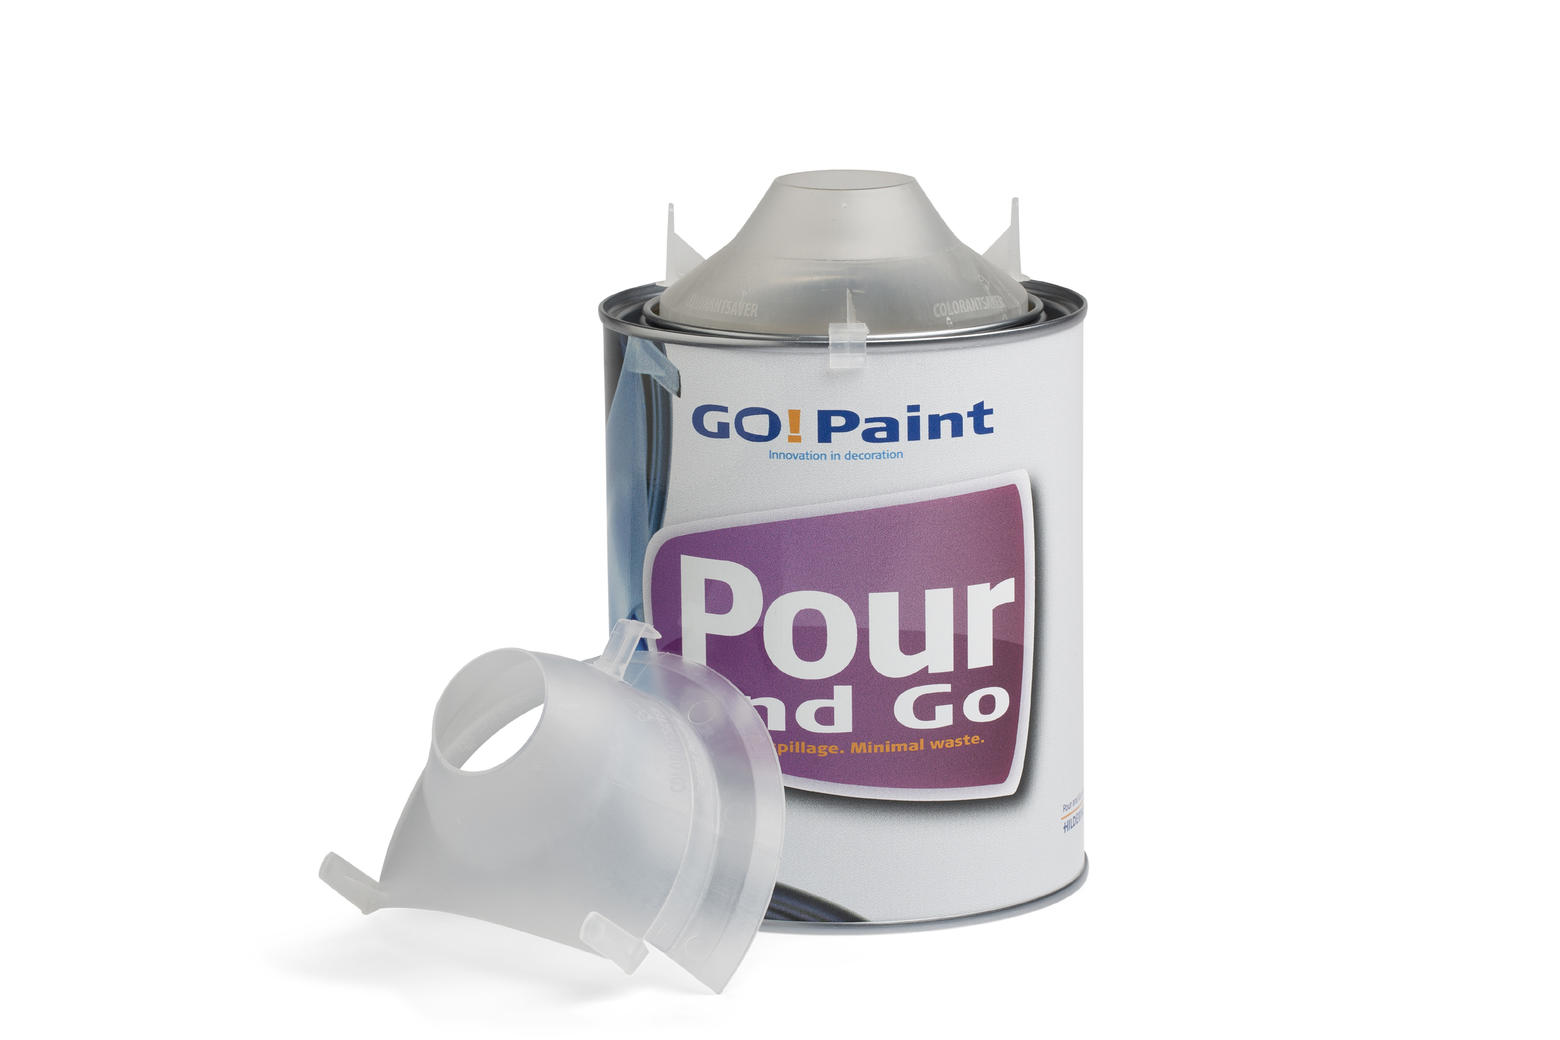 Easy pouring of paint from a paint can, emptying without making a mess.